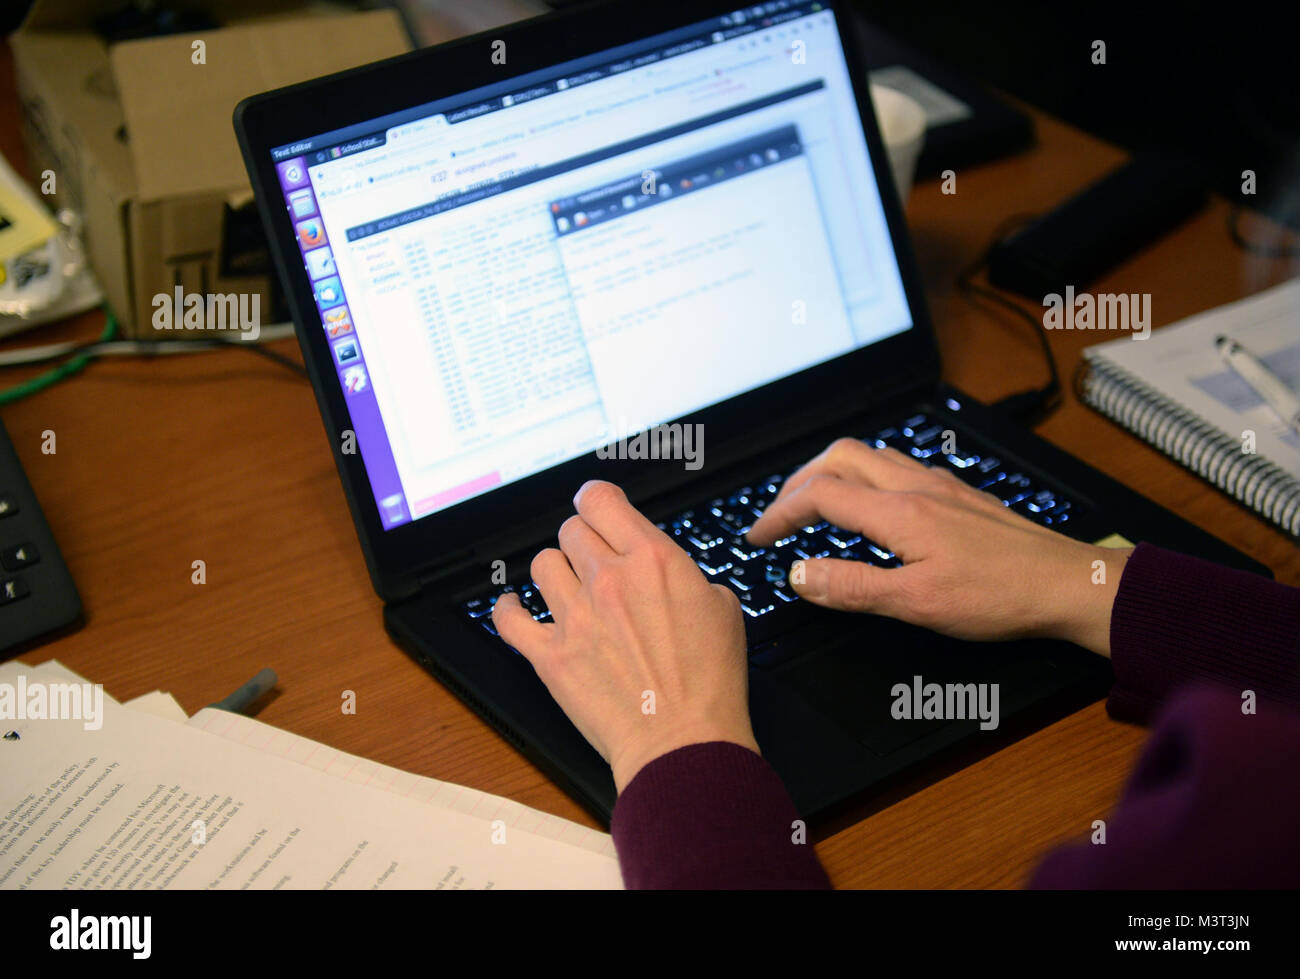 Red Cell hacks and attacks during Cyber Defense Exercise operations at the Parsons Building located in Columbia, Stock Photo